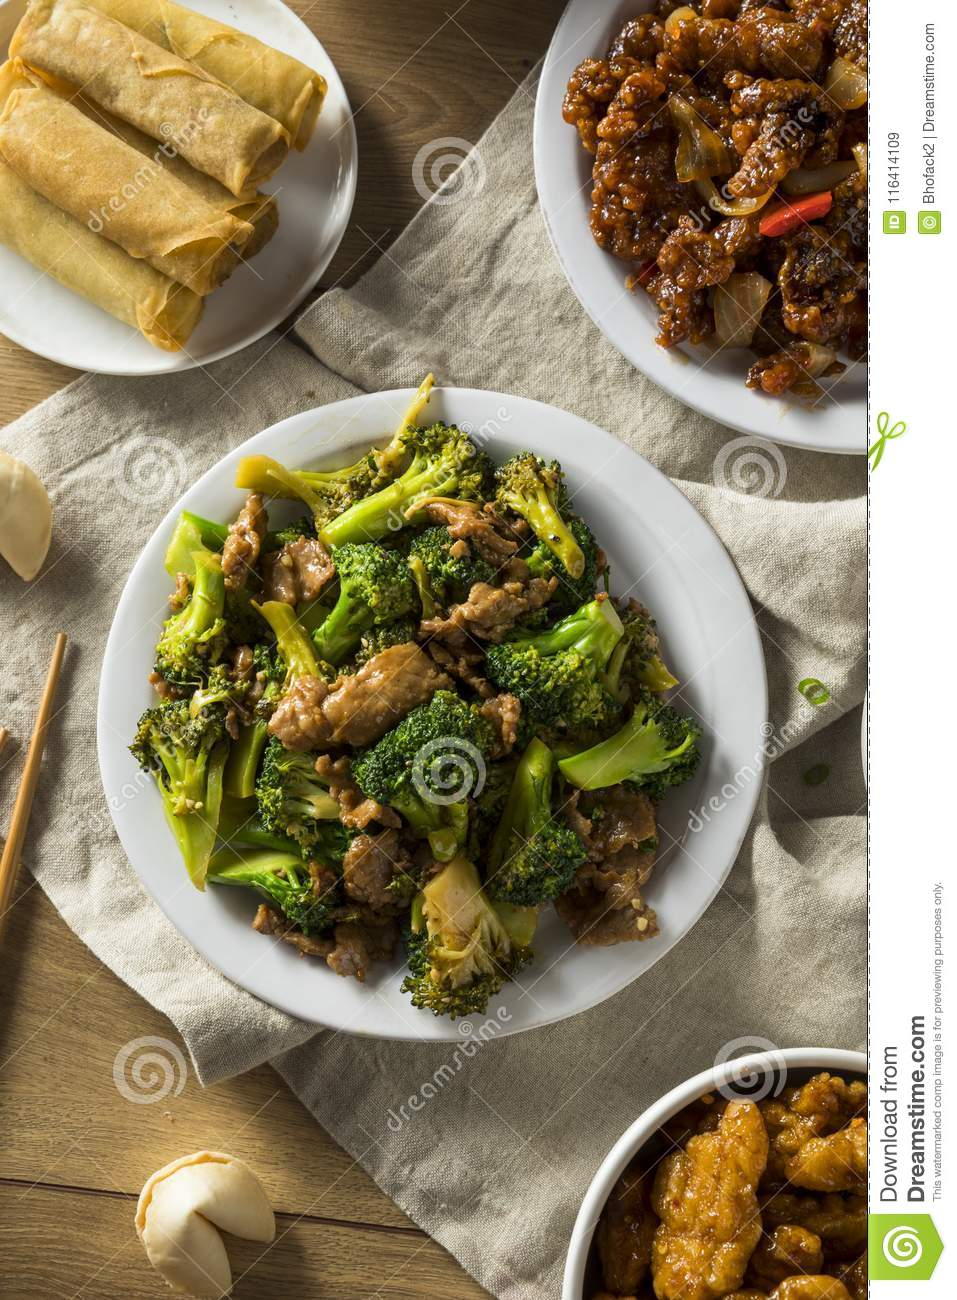 Spicy Chinese Take Out Food Stock Image - Image of ...